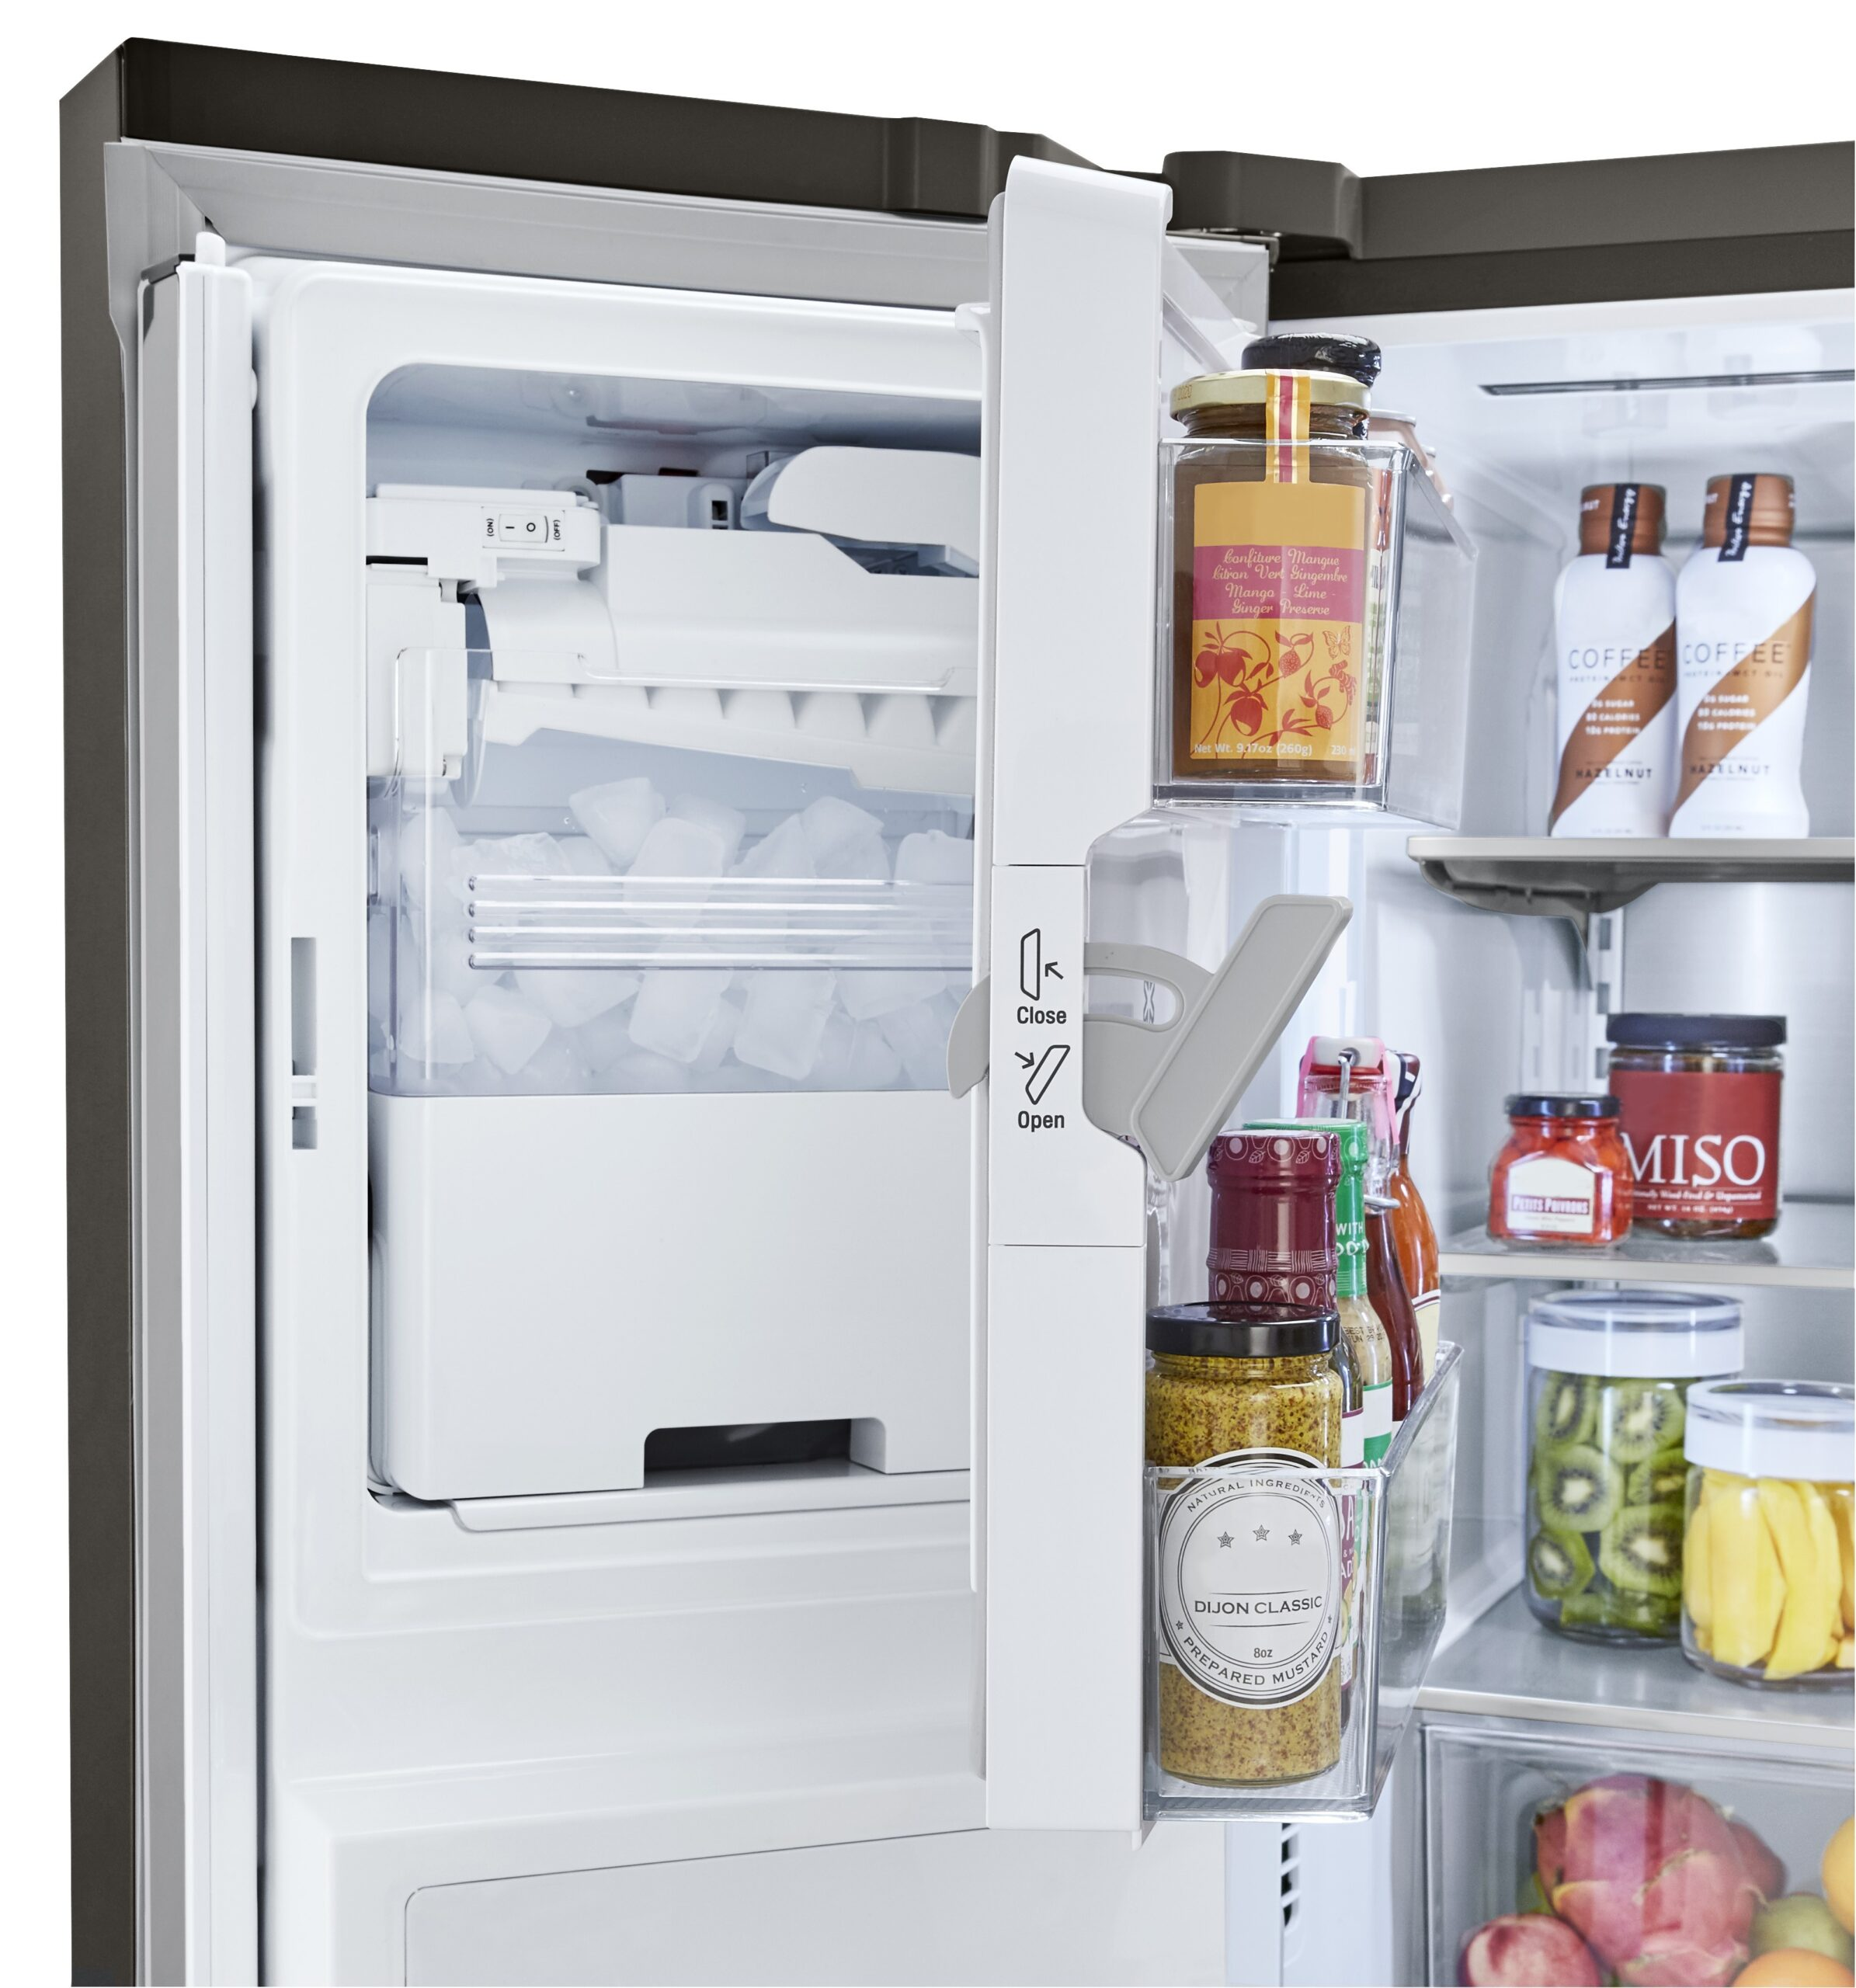 LG refrigerator partially opened to show the interior of its door-ice maker.